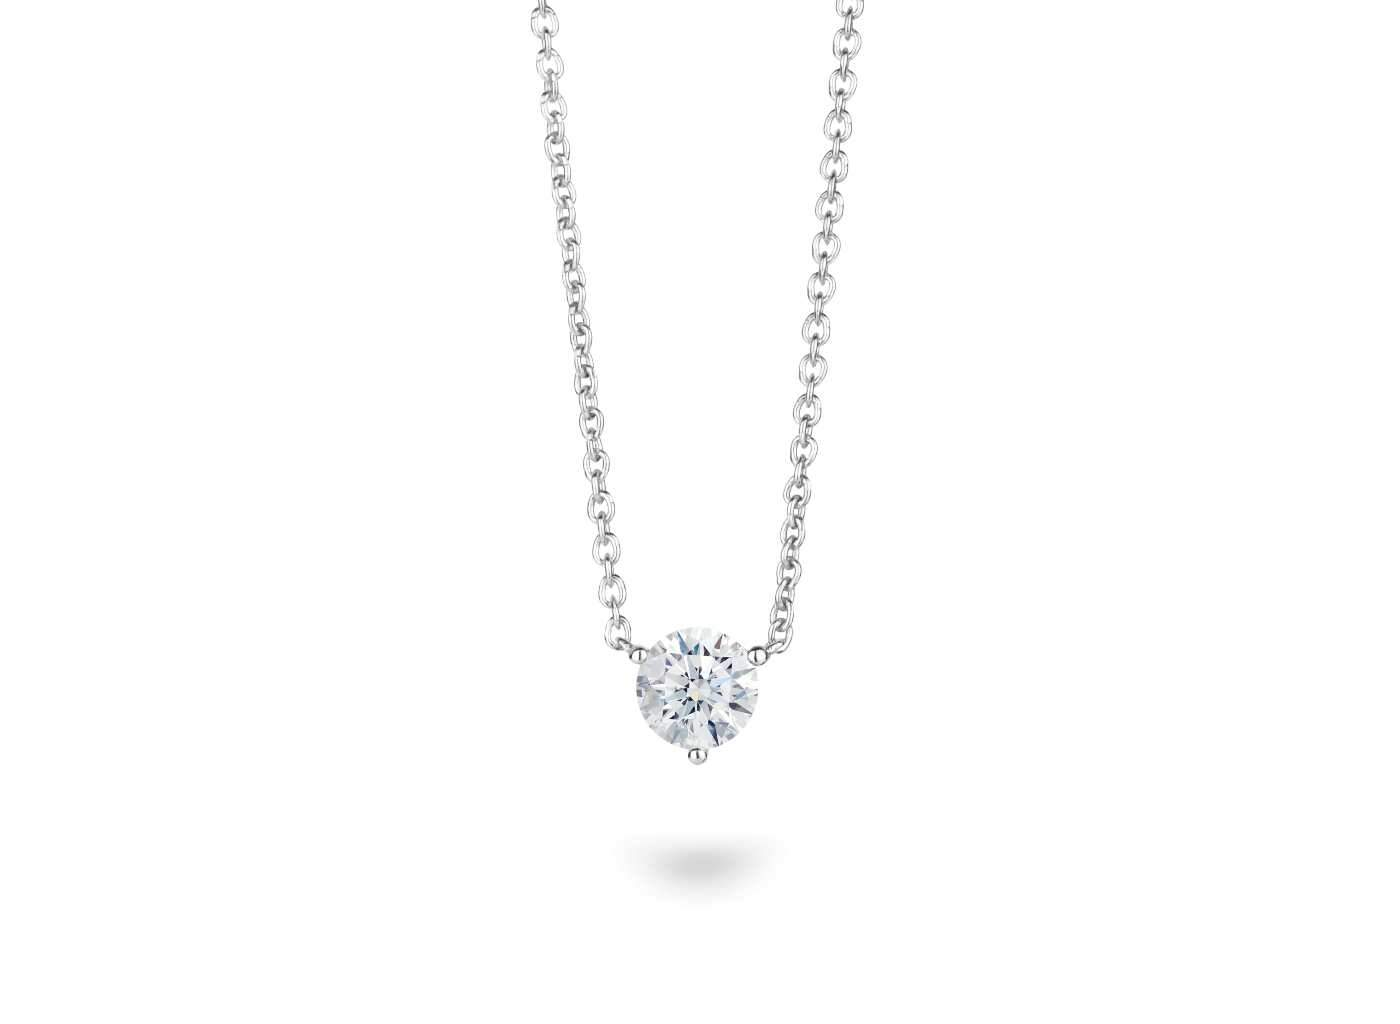 Front view of Solitaire 3/4 carat pendant with white diamond